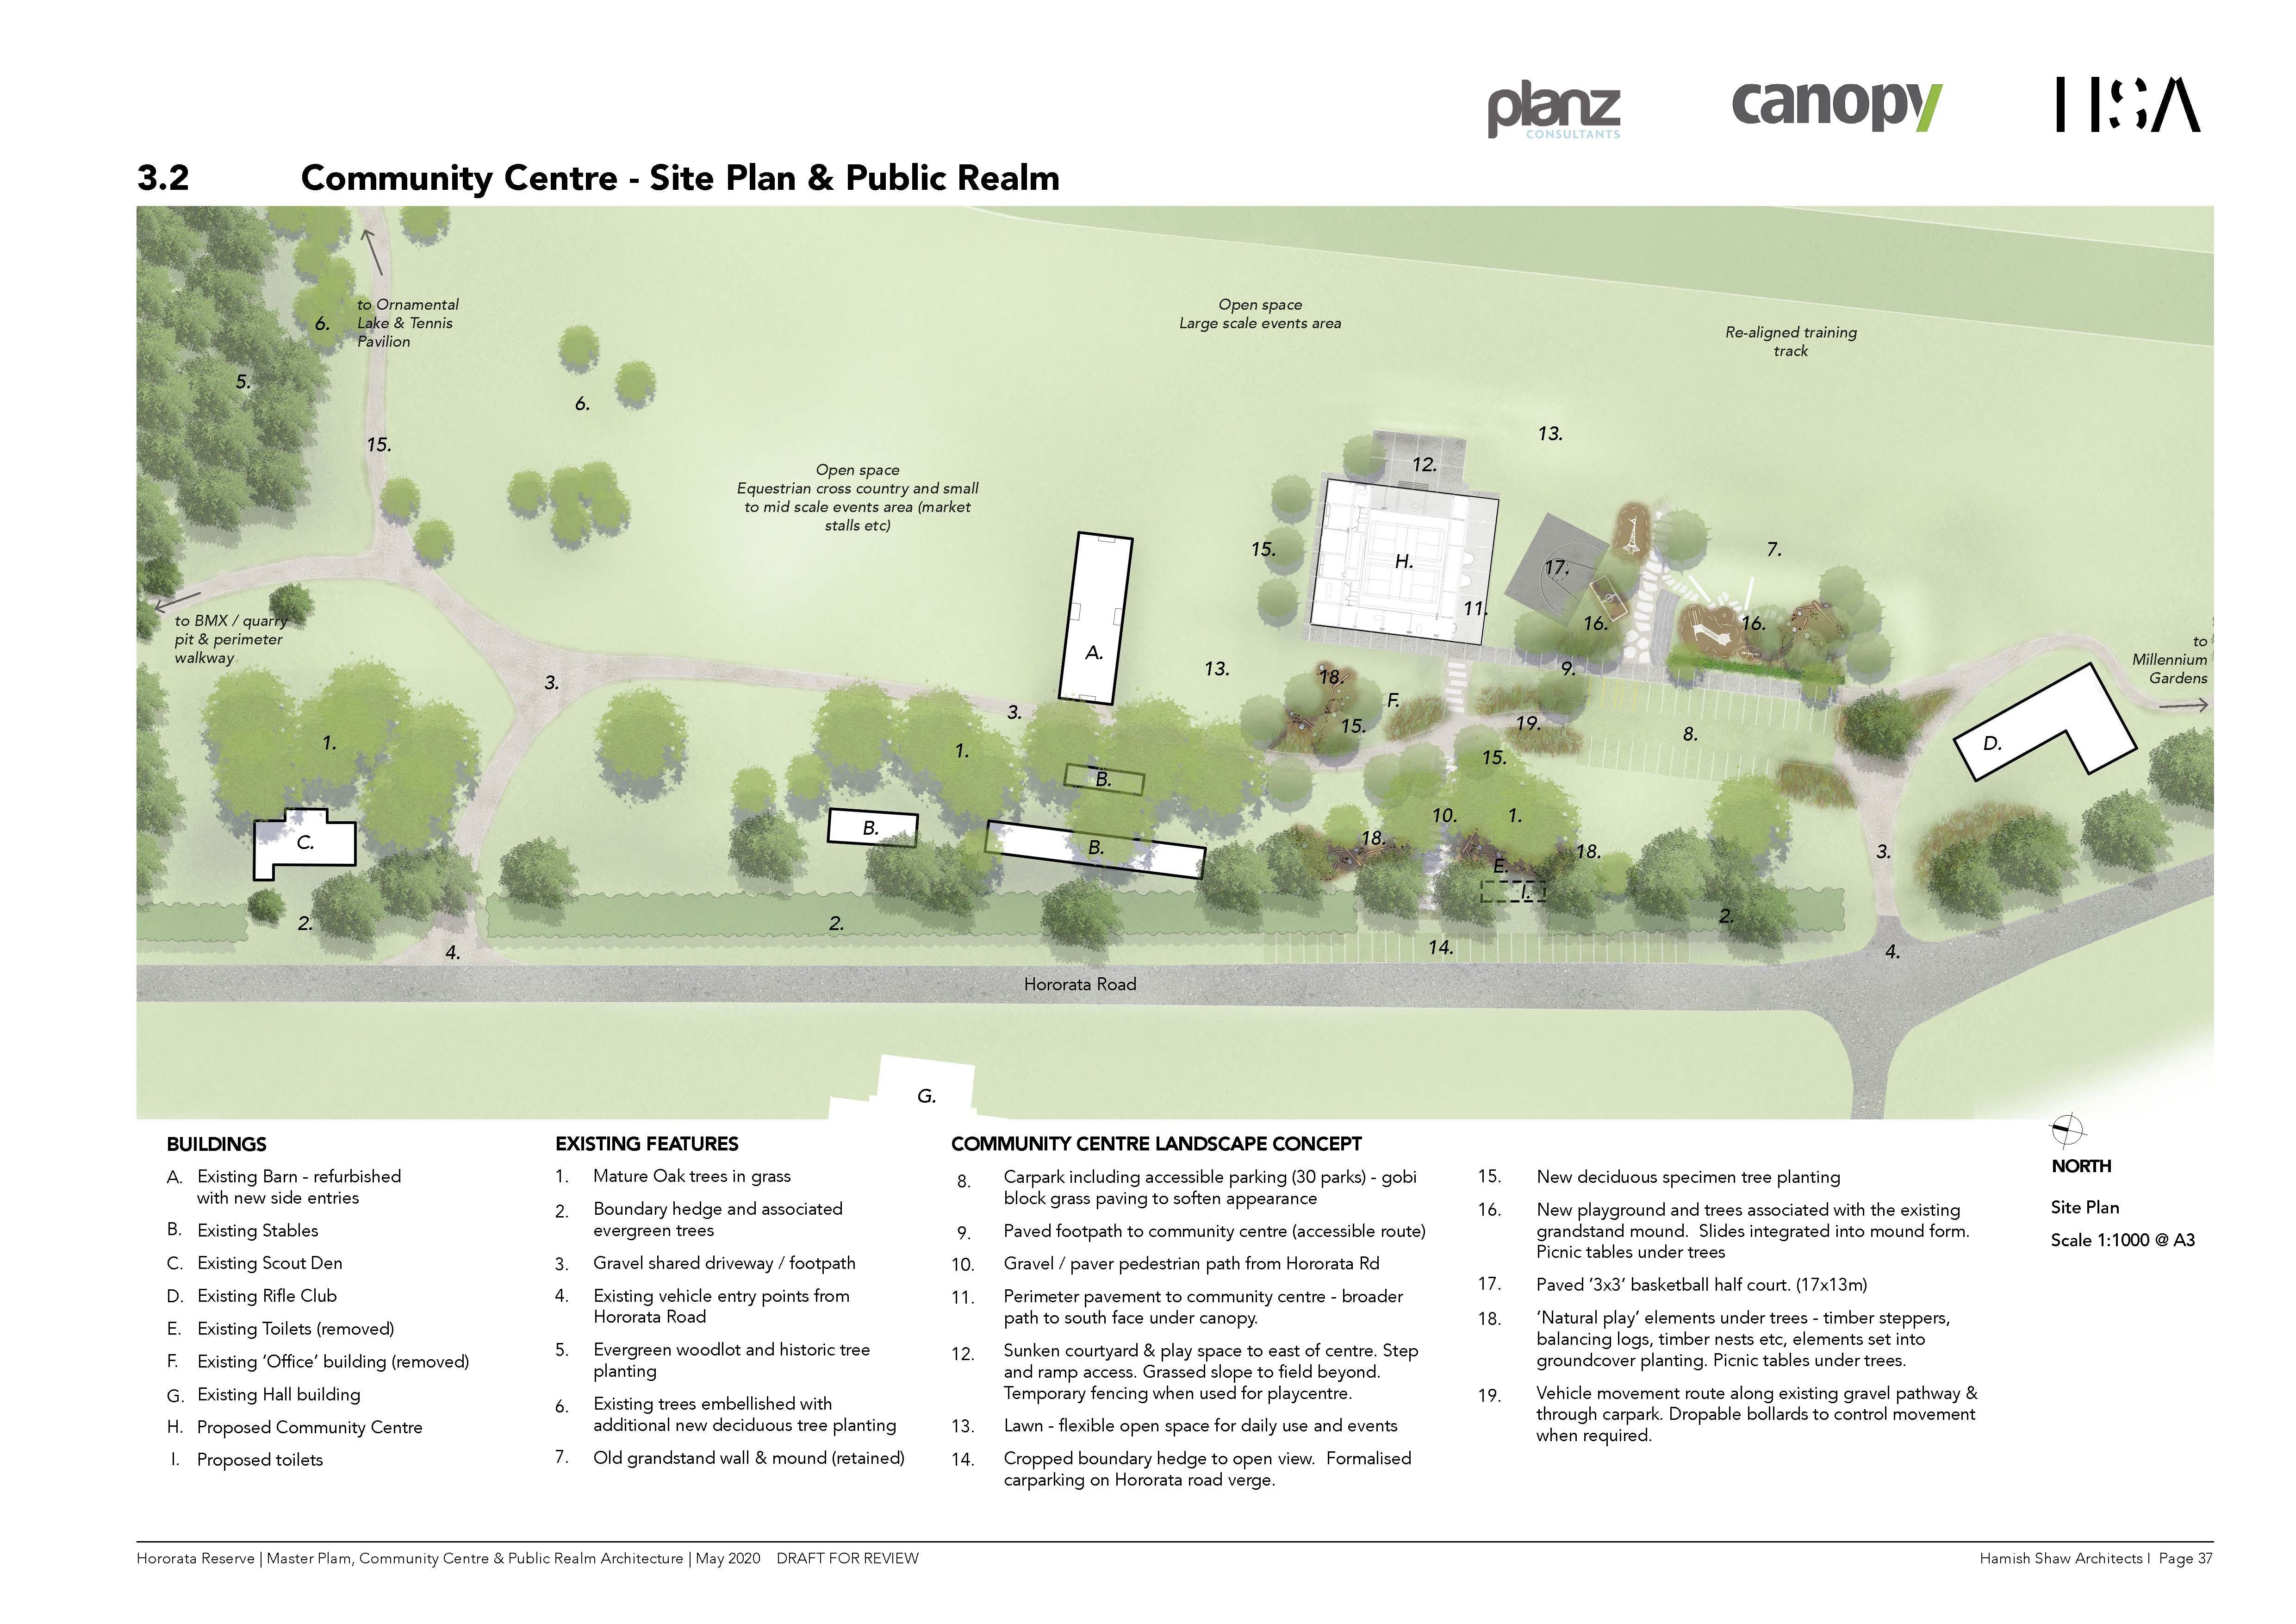 Community Centre - Site plan and public realm. Image: Selwyn District Council